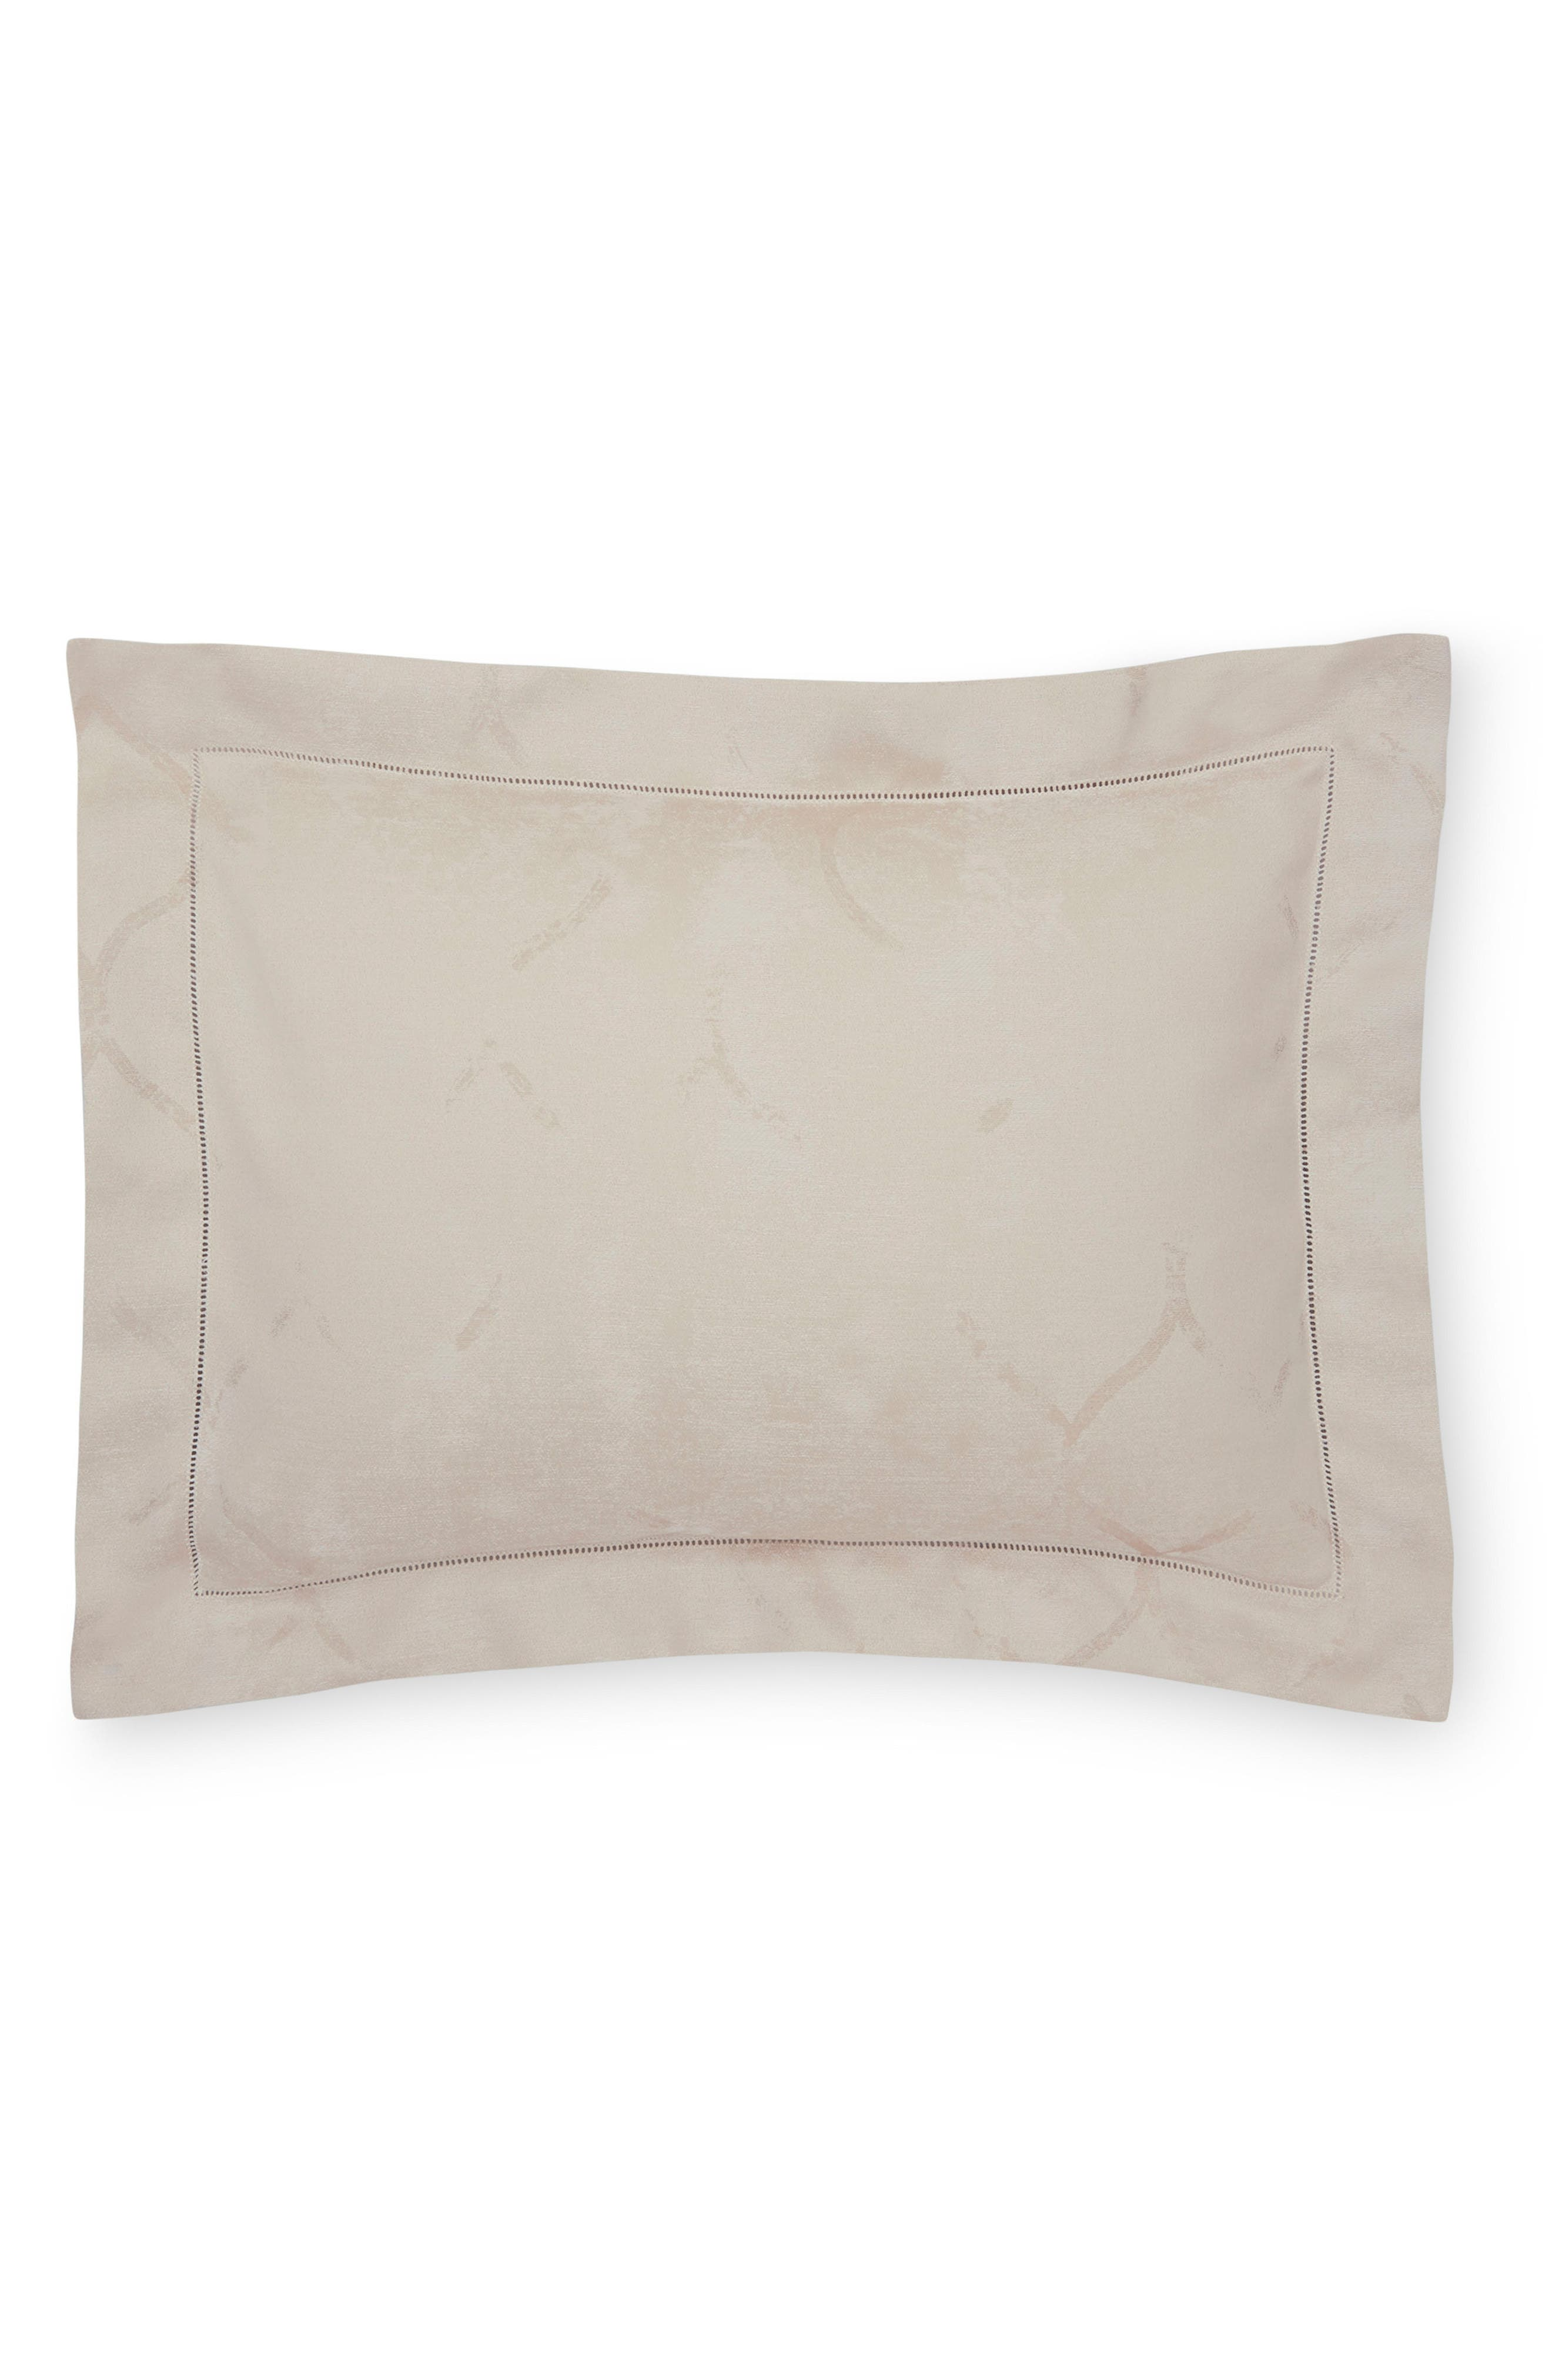 Chetta Boudoir Sham,                         Main,                         color, ALABASTER